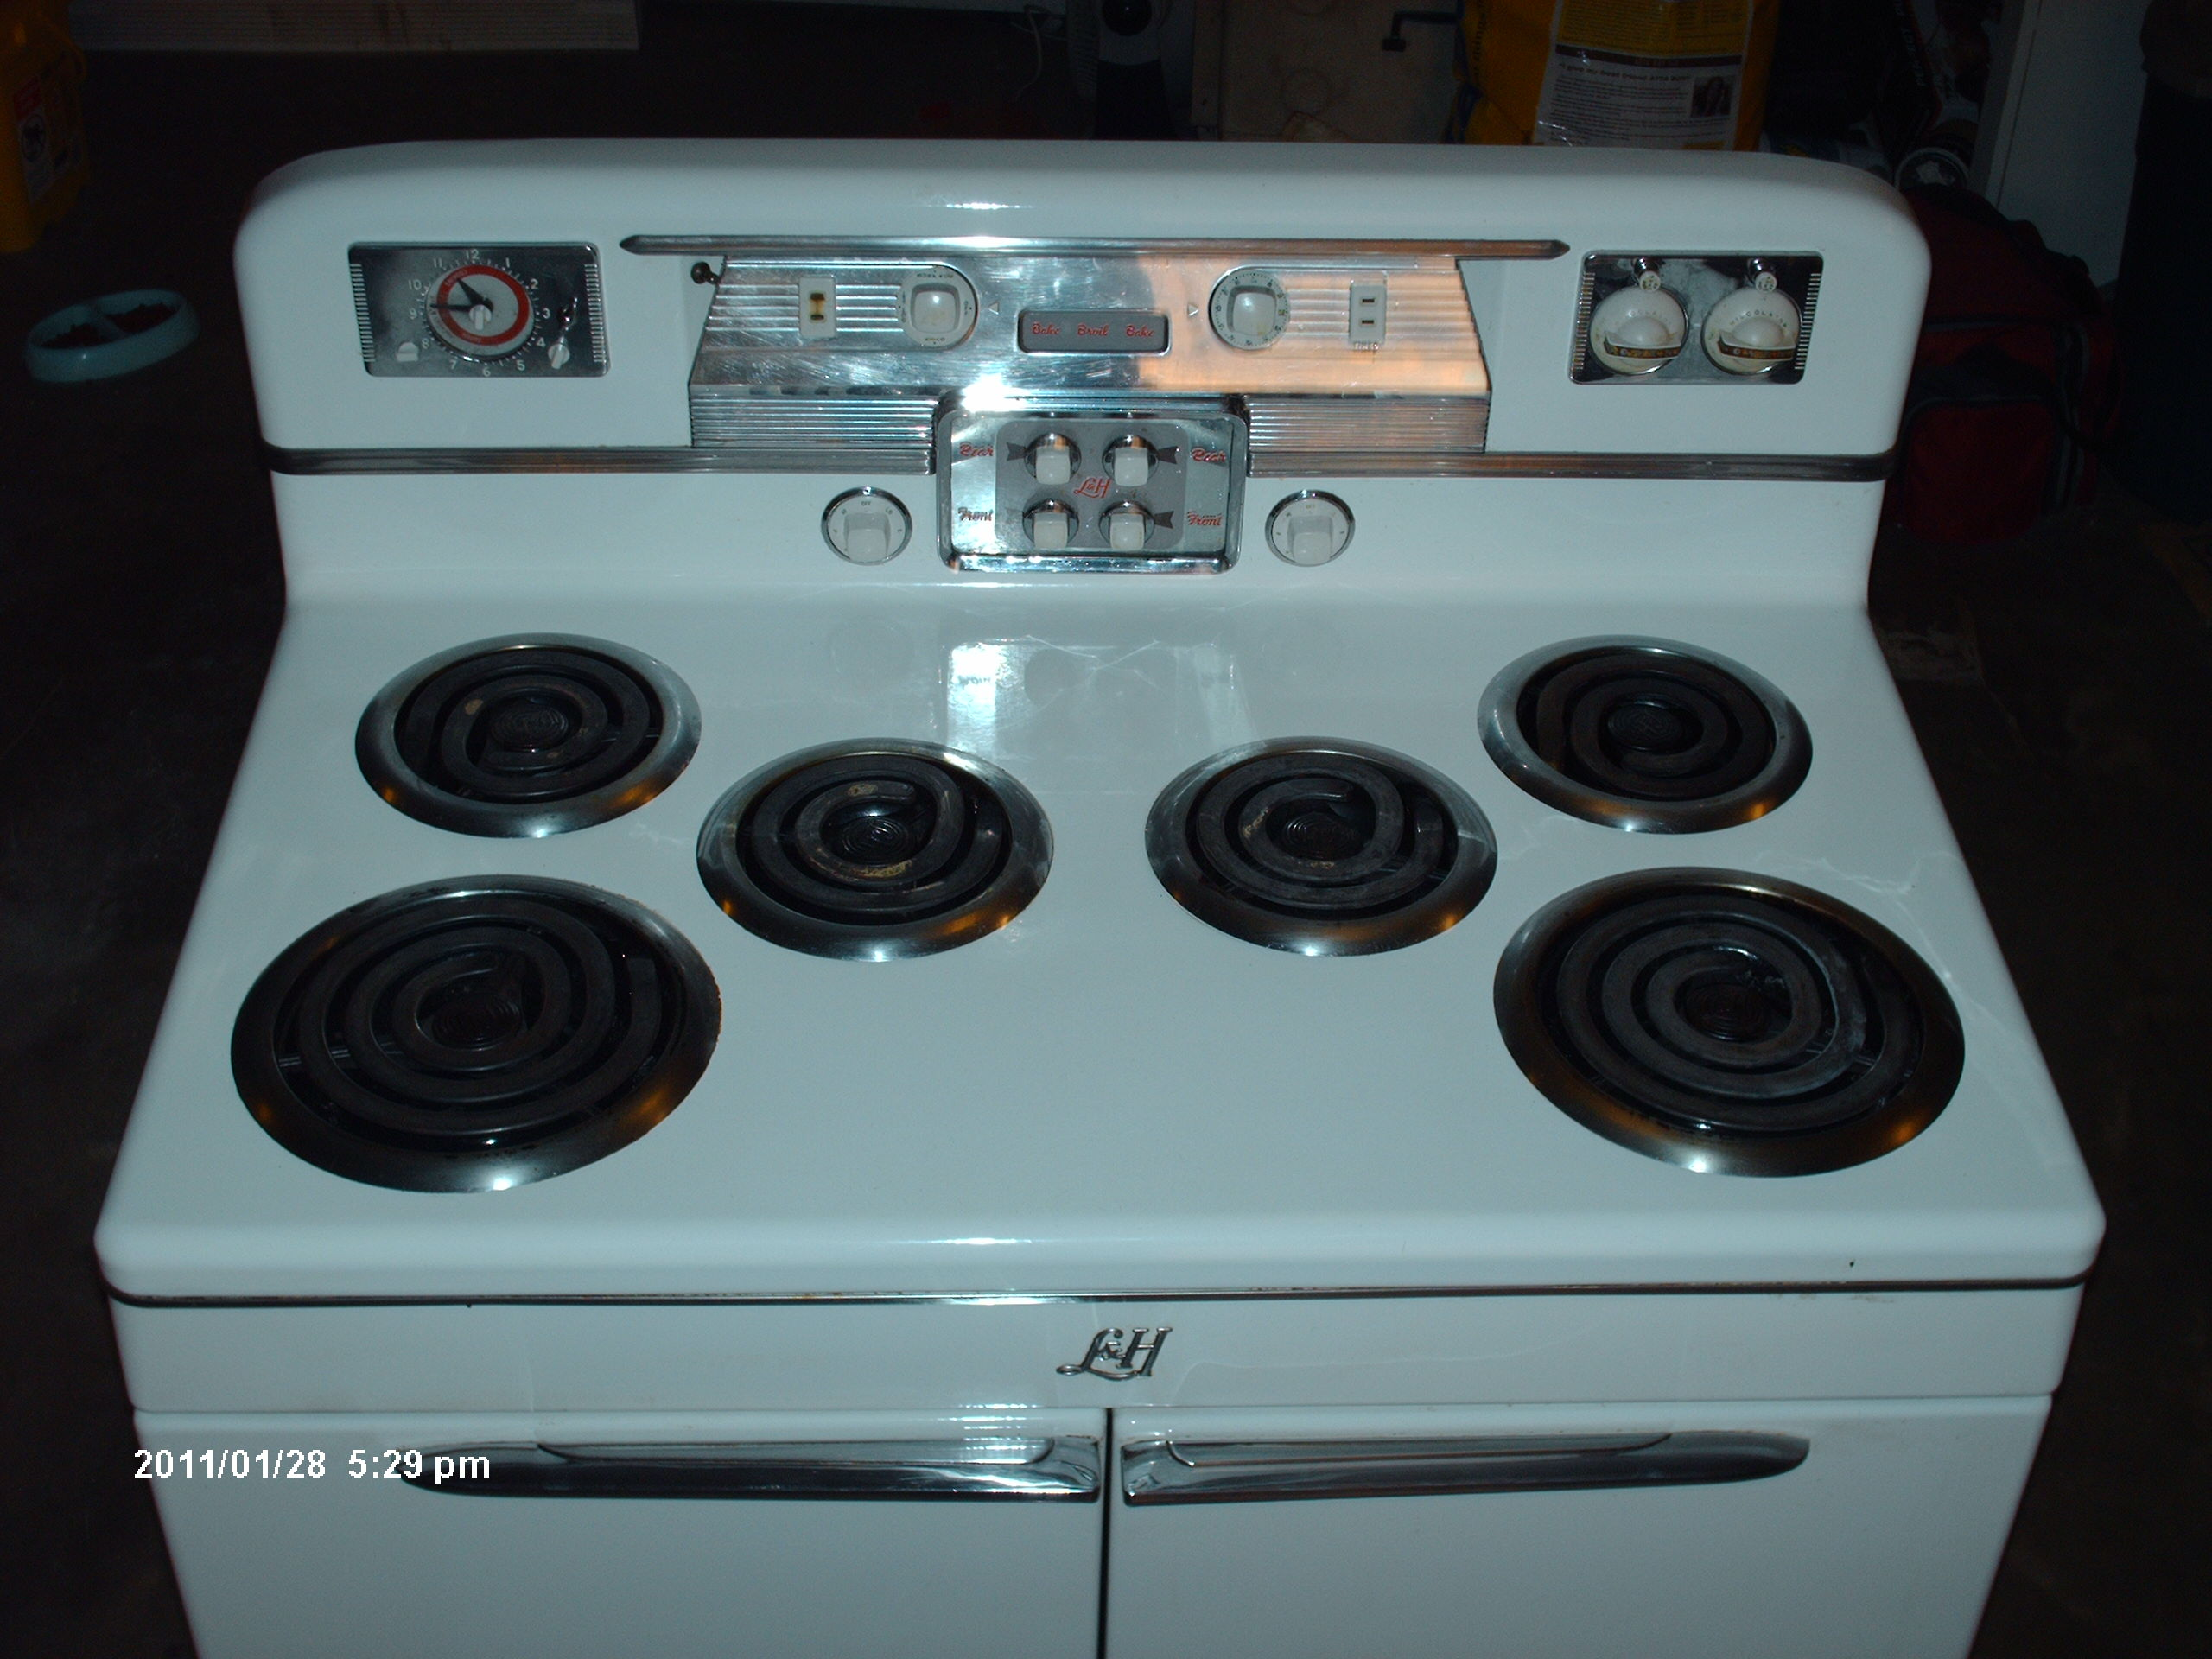 lu0026h sixburner double oven electric range